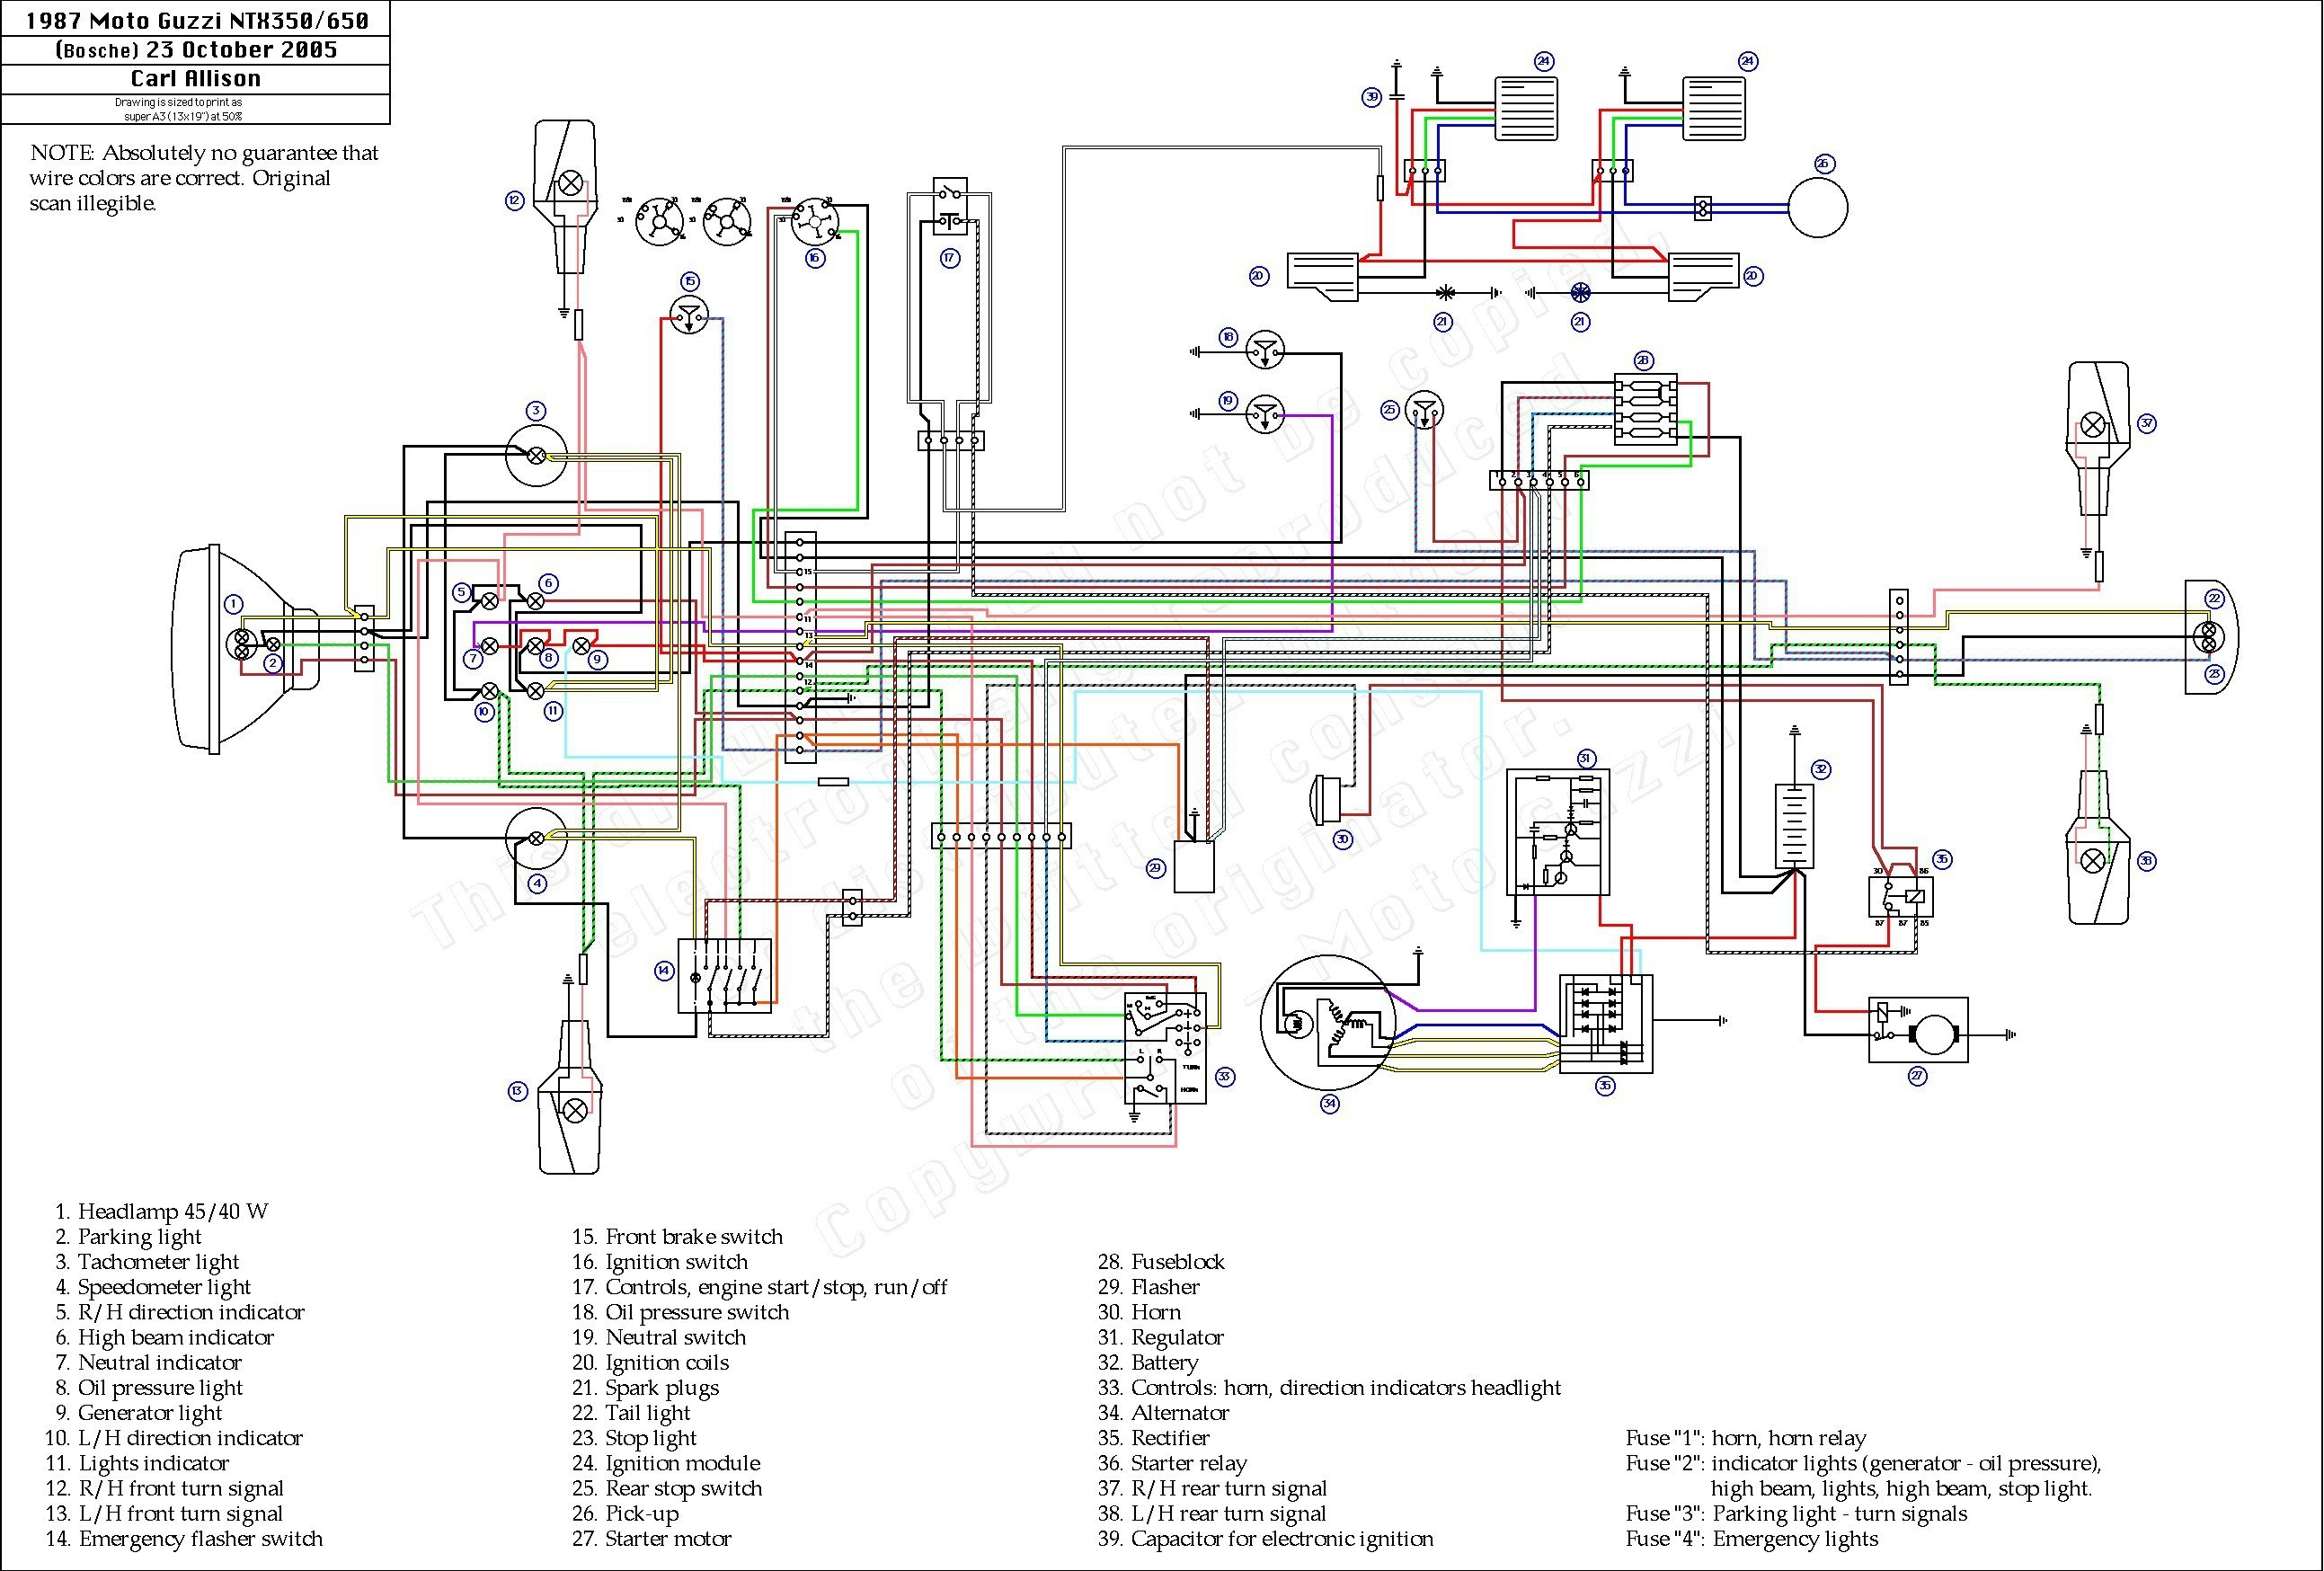 taotao 250 wiring diagram wiring diagram rh w45 blacz de